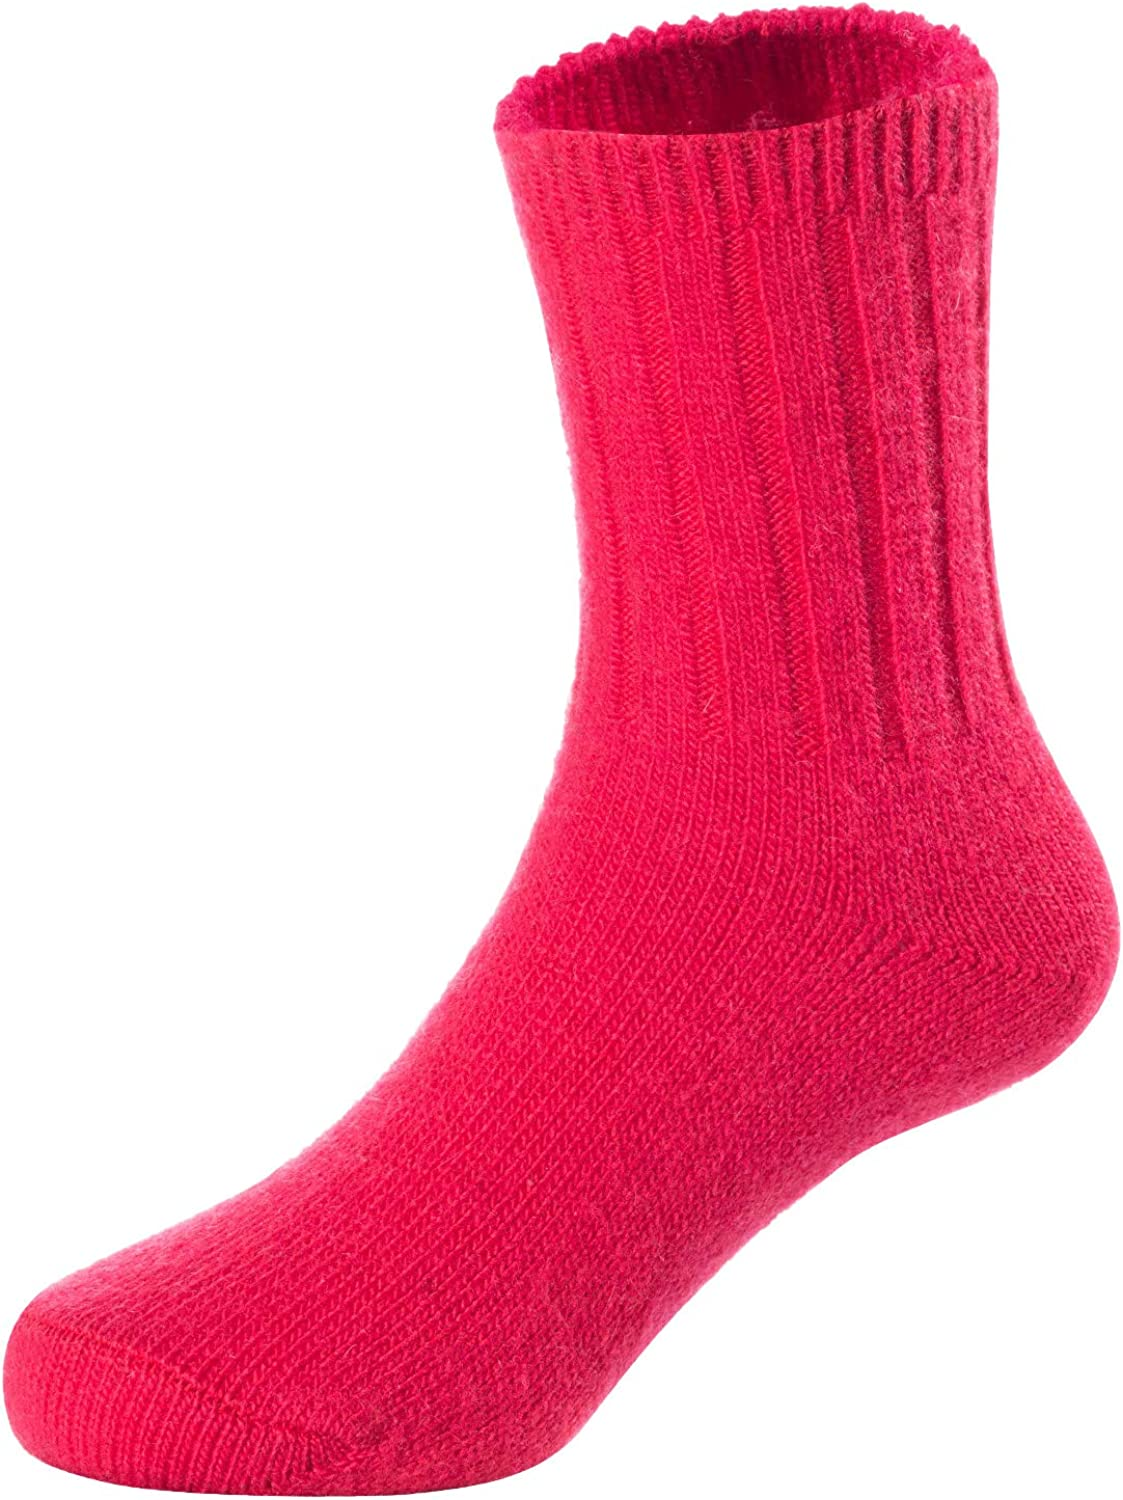 Durable 2 Pairs Childrens Comfy Stretchable Wool Crew Socks Size 0Y-6Y